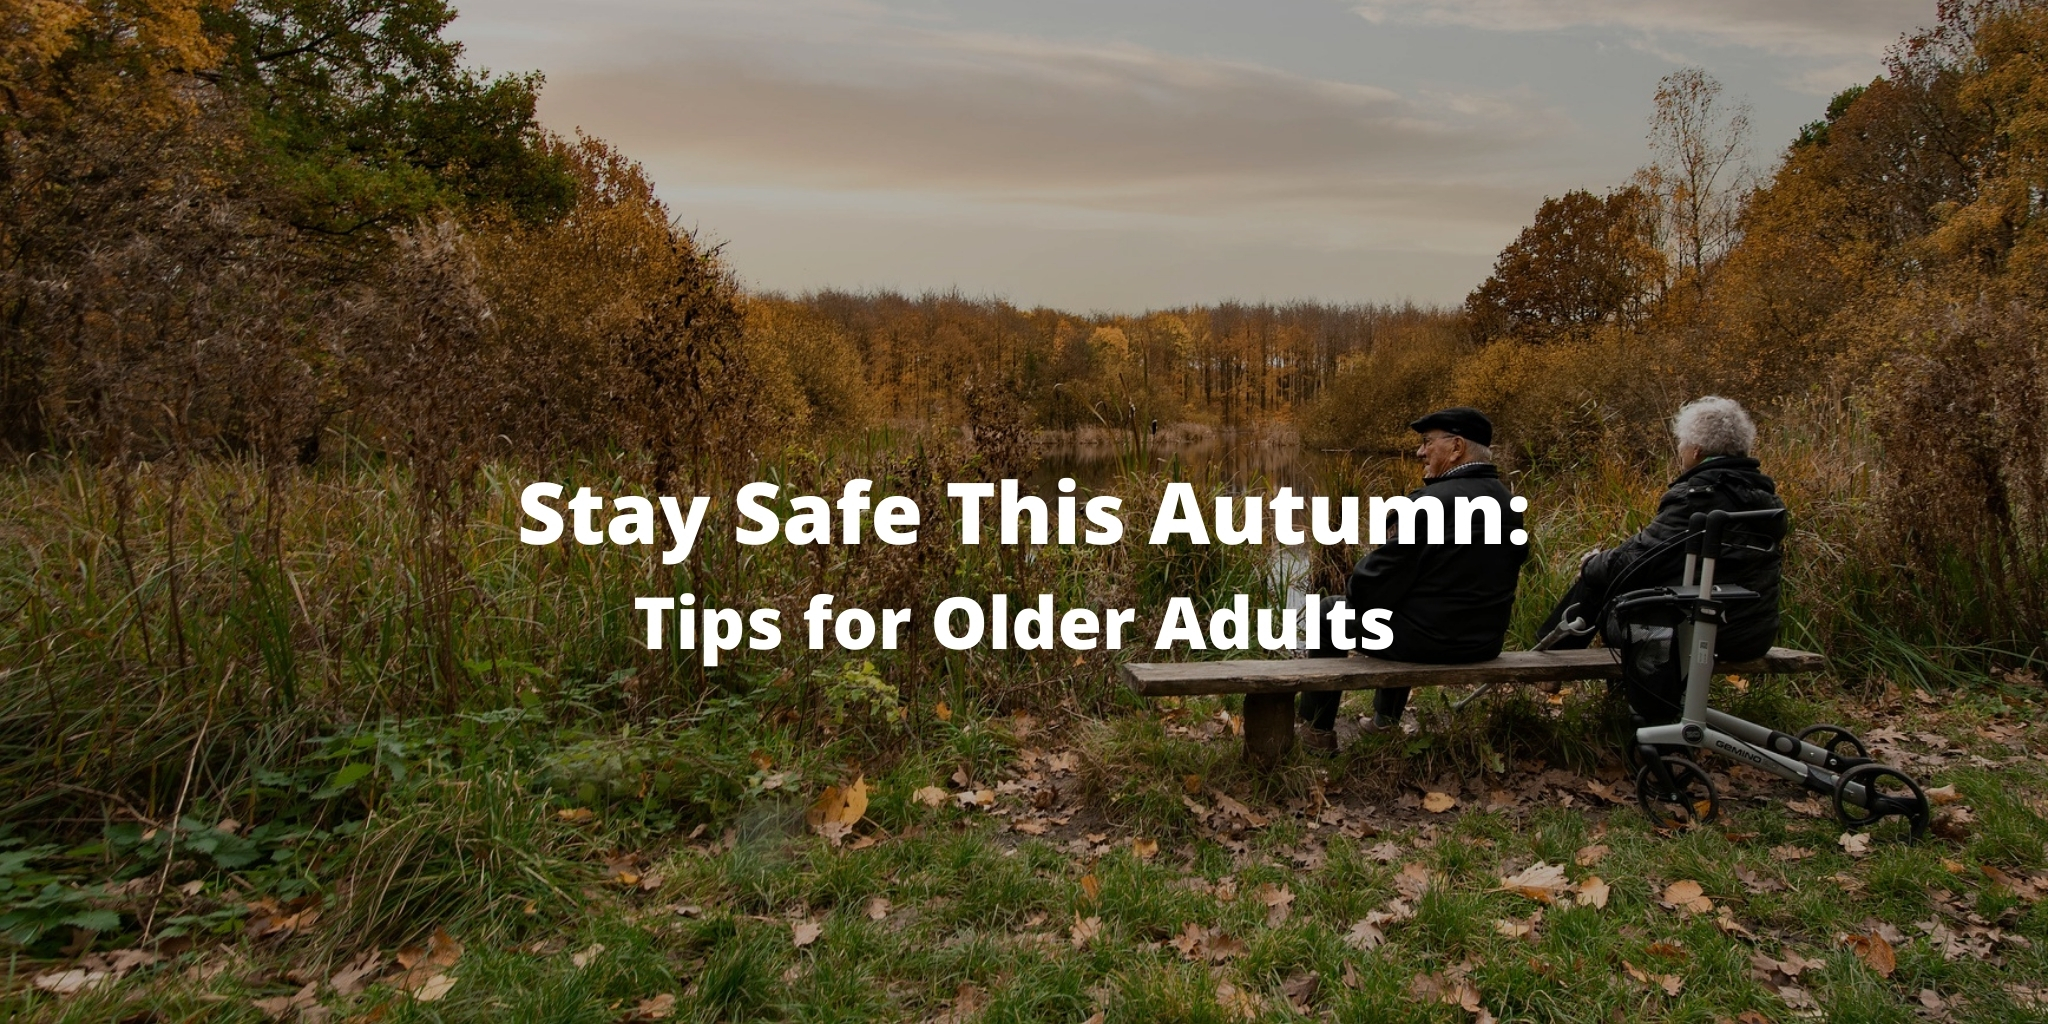 Stay Safe This Autumn - Tips for Older Adults